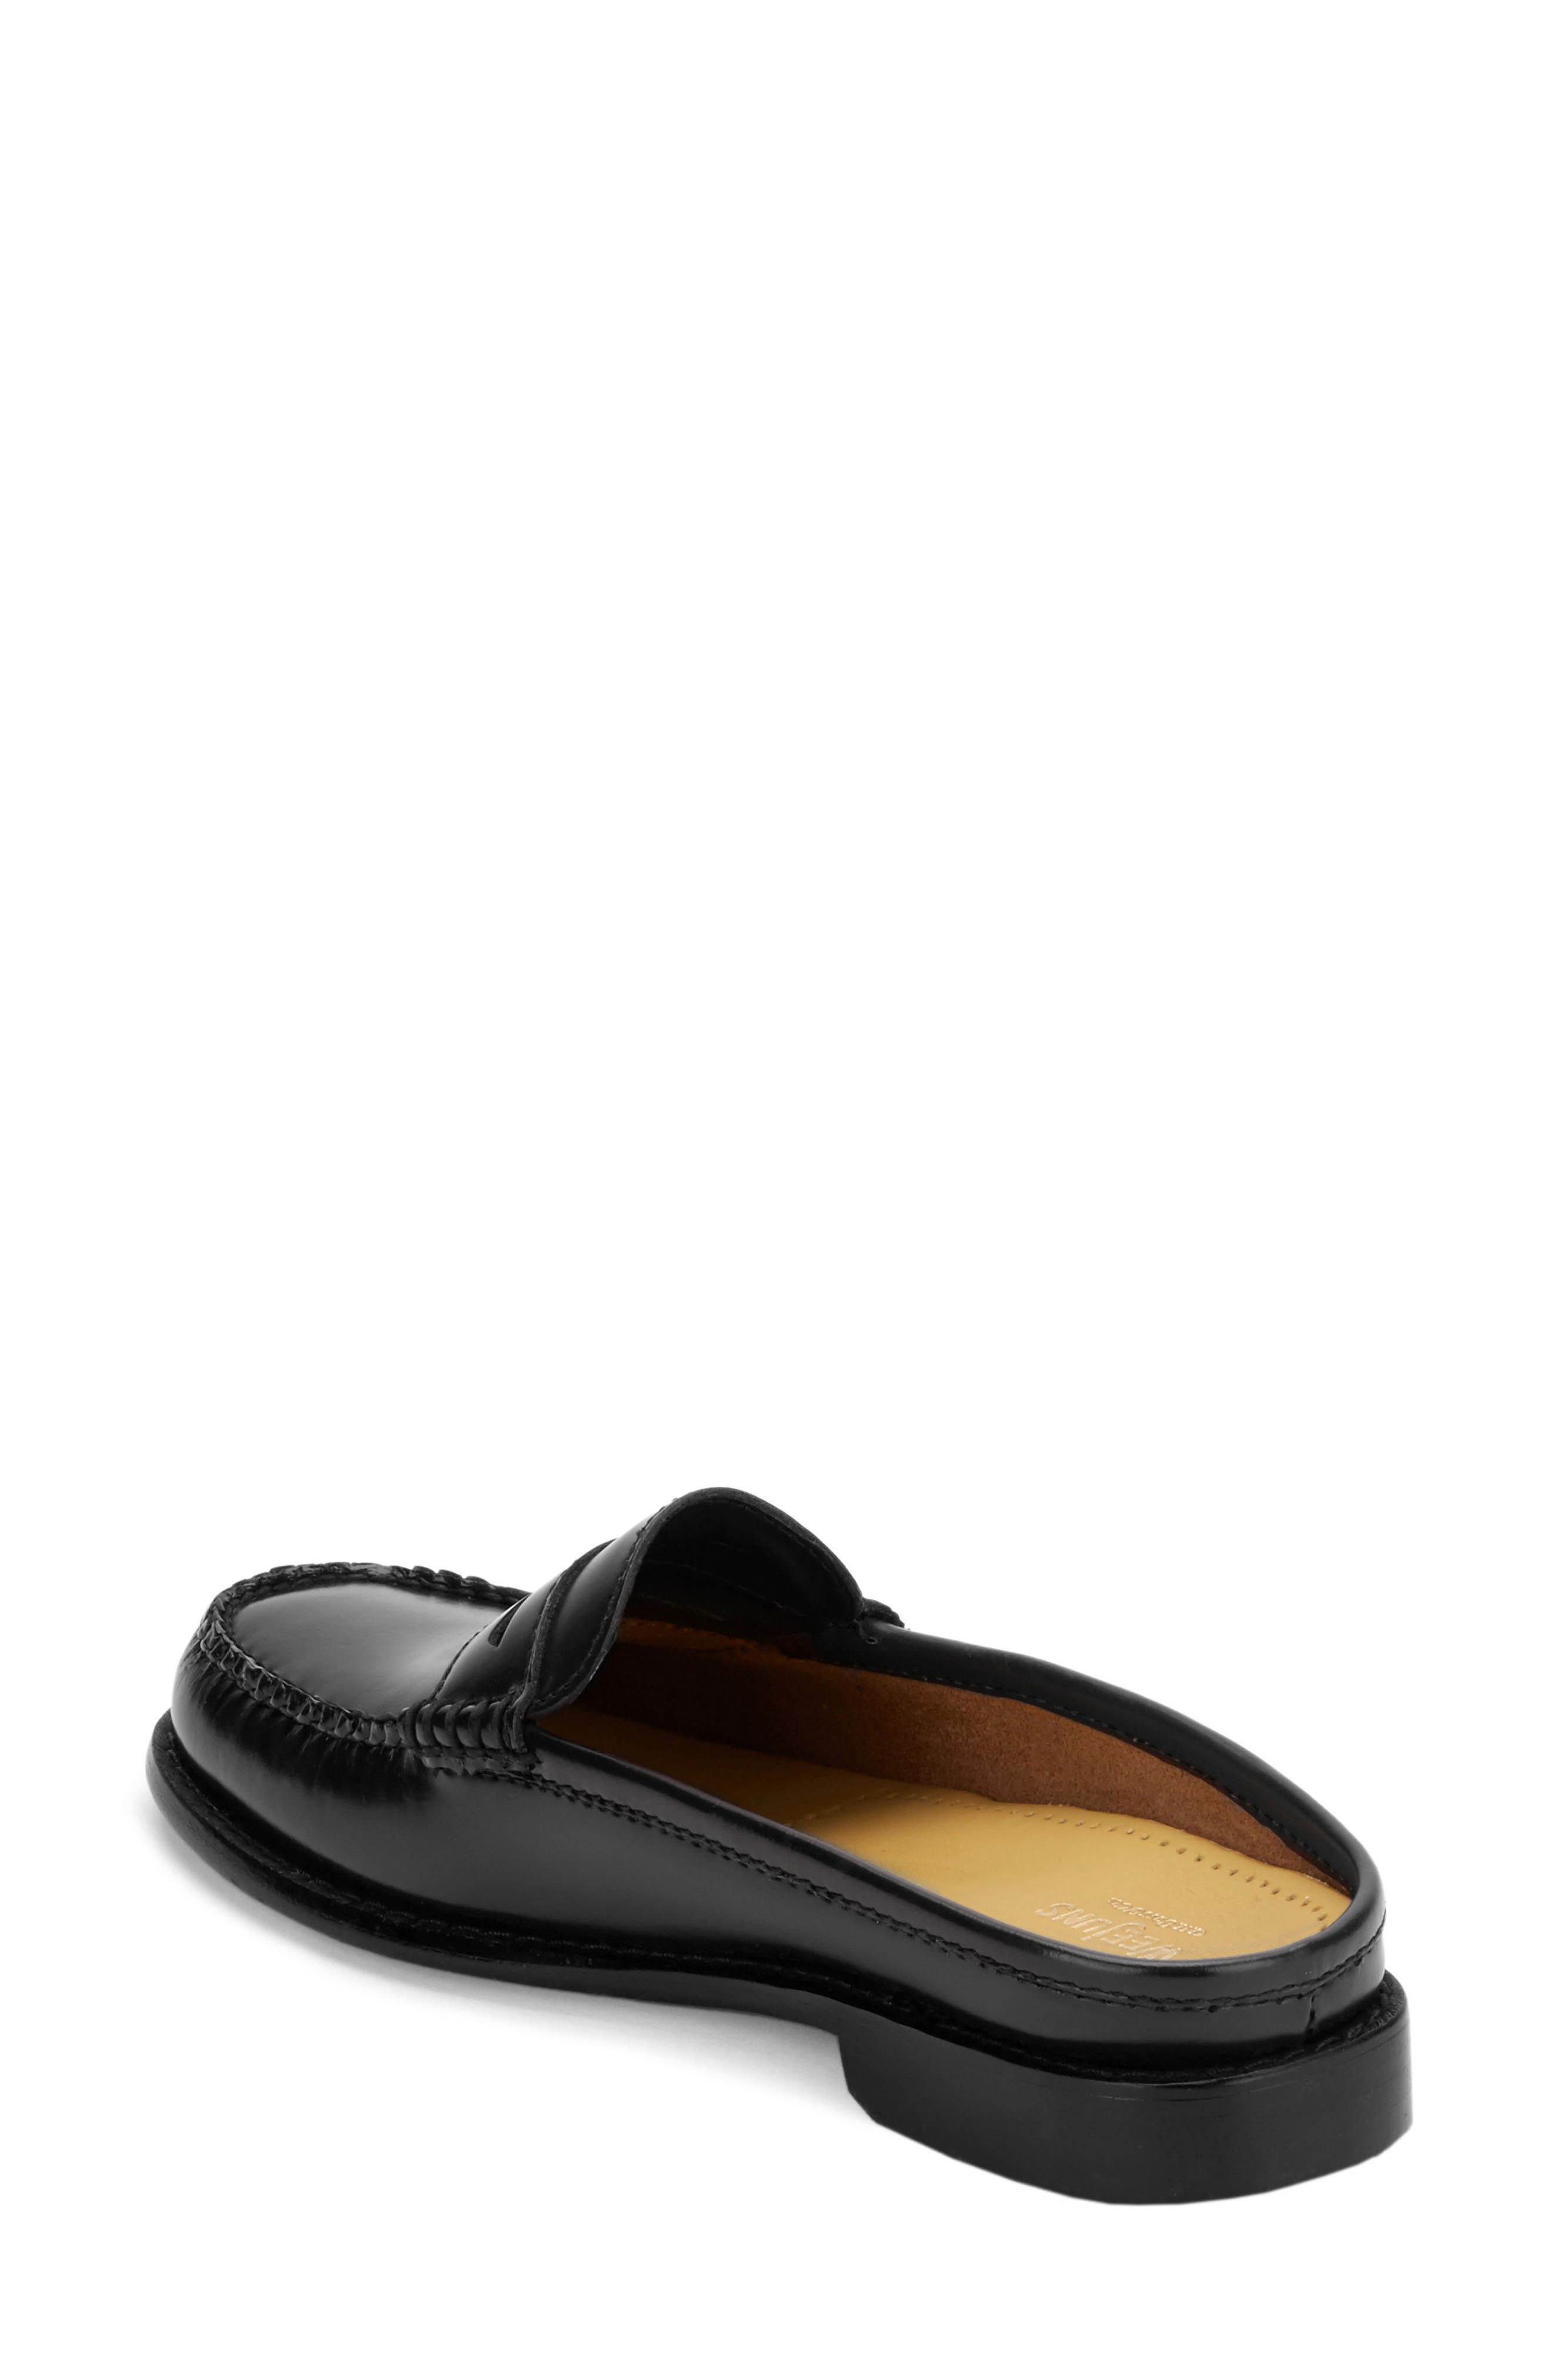 Wynn Loafer Mule,                             Alternate thumbnail 41, color,